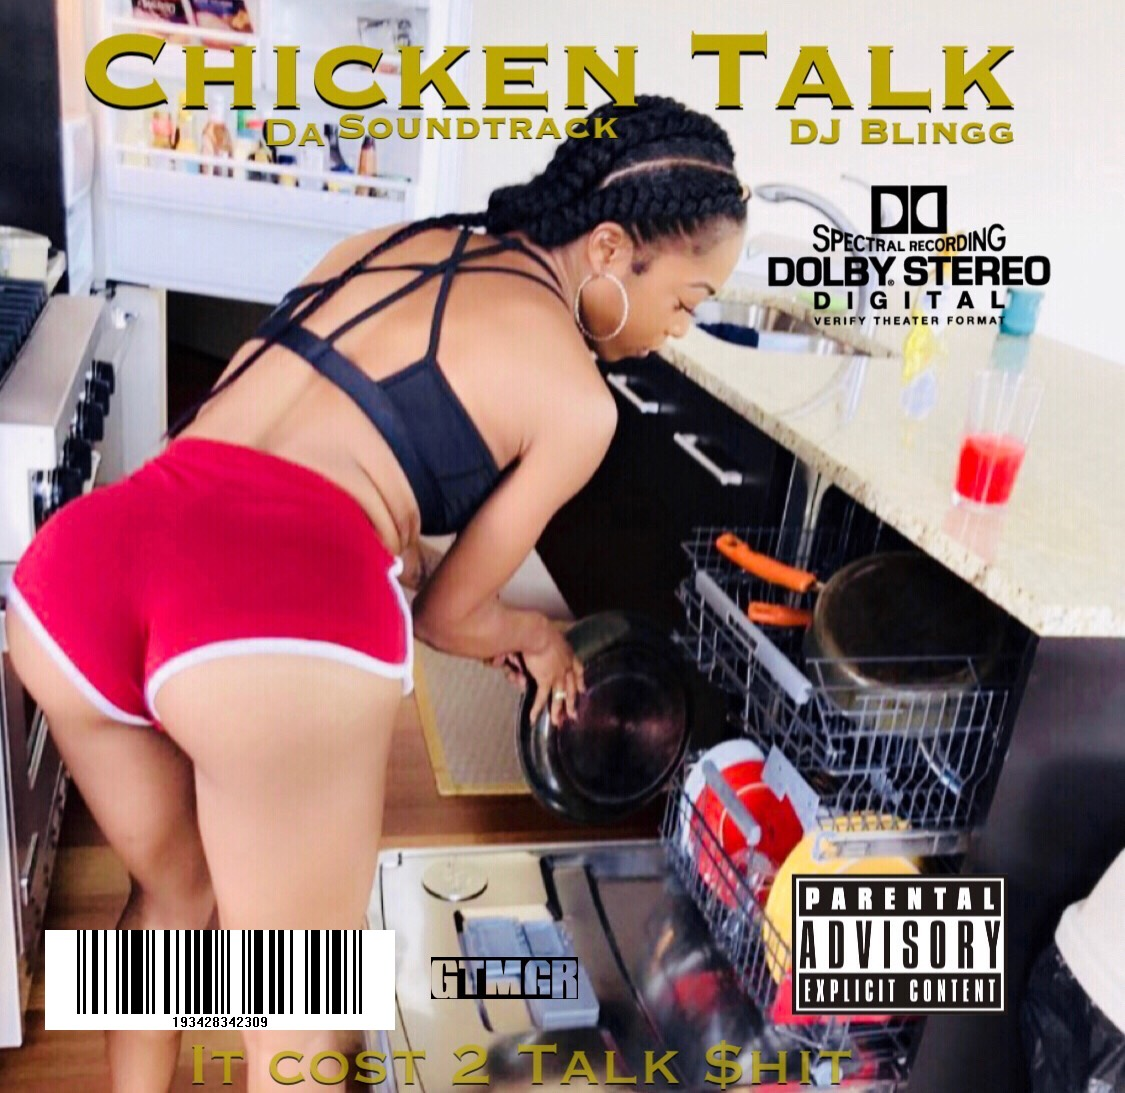 Chicken Talk Da Soundtrack